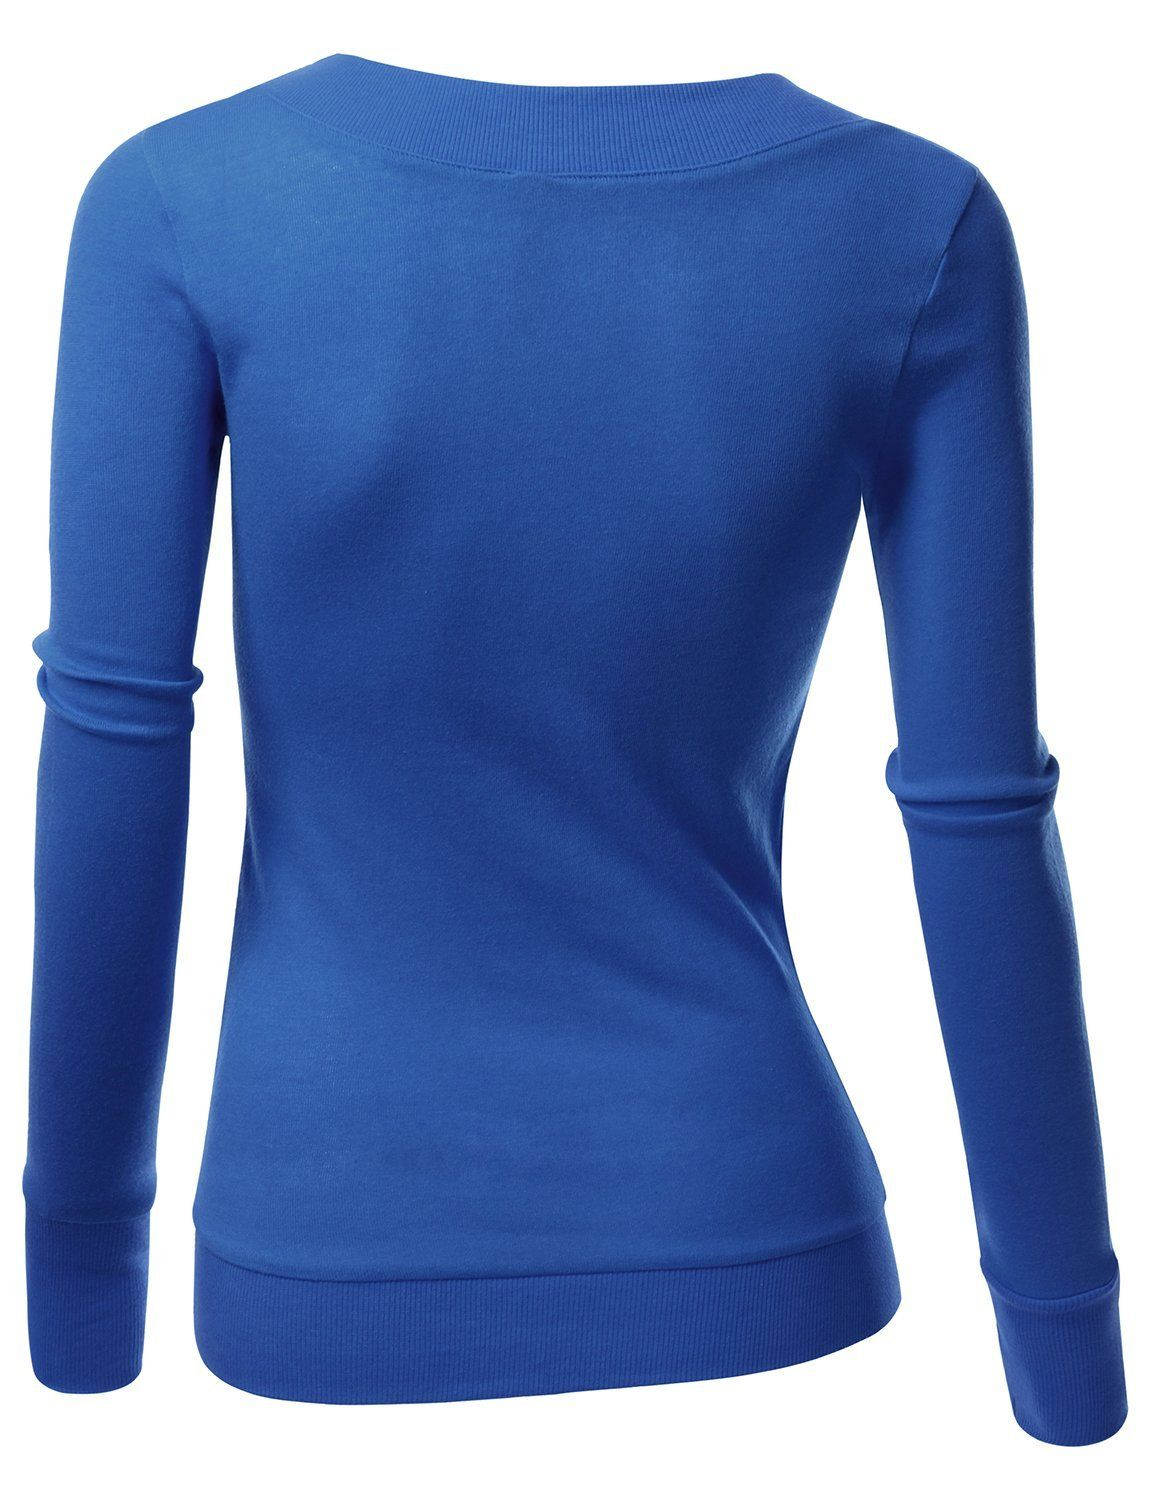 5f3a0a48e6830 Doublju Womens Long Sleeve Thermal Top With Button Detail at cuffs at  Amazon Women s Clothing store